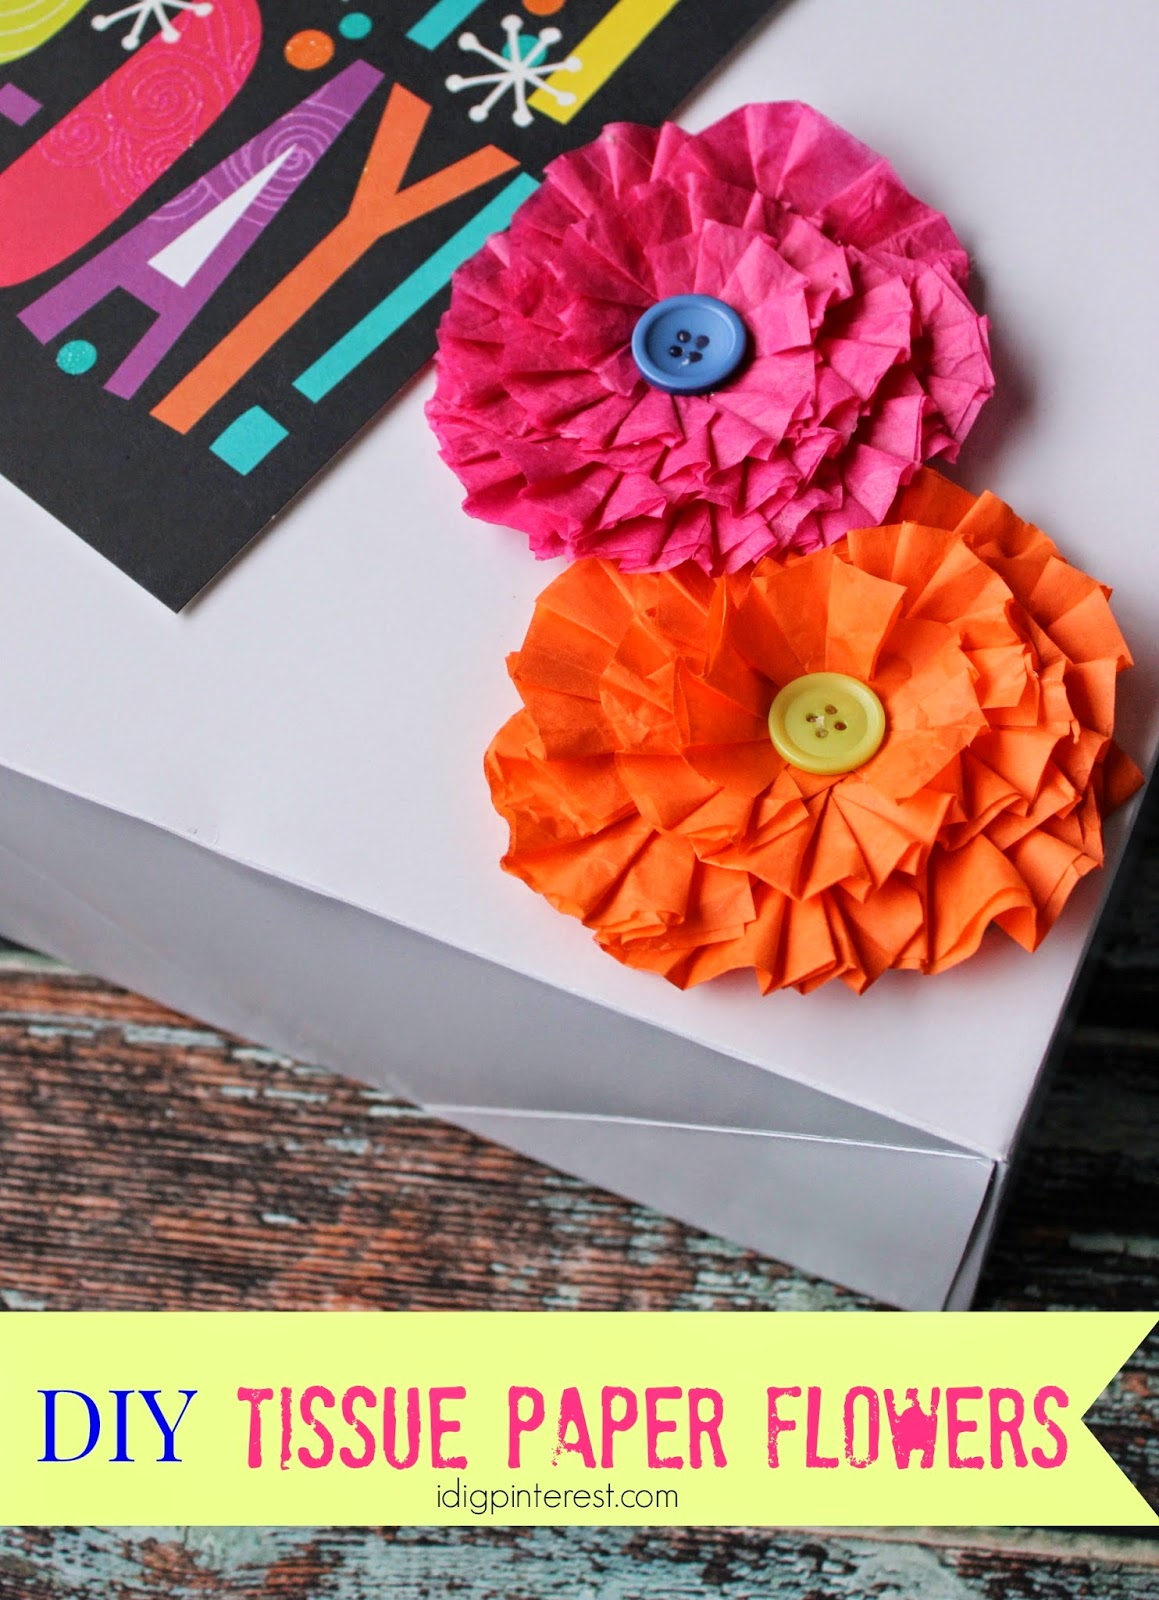 How To Make Decorative Tissue Paper Flowers I Dig Pinterest